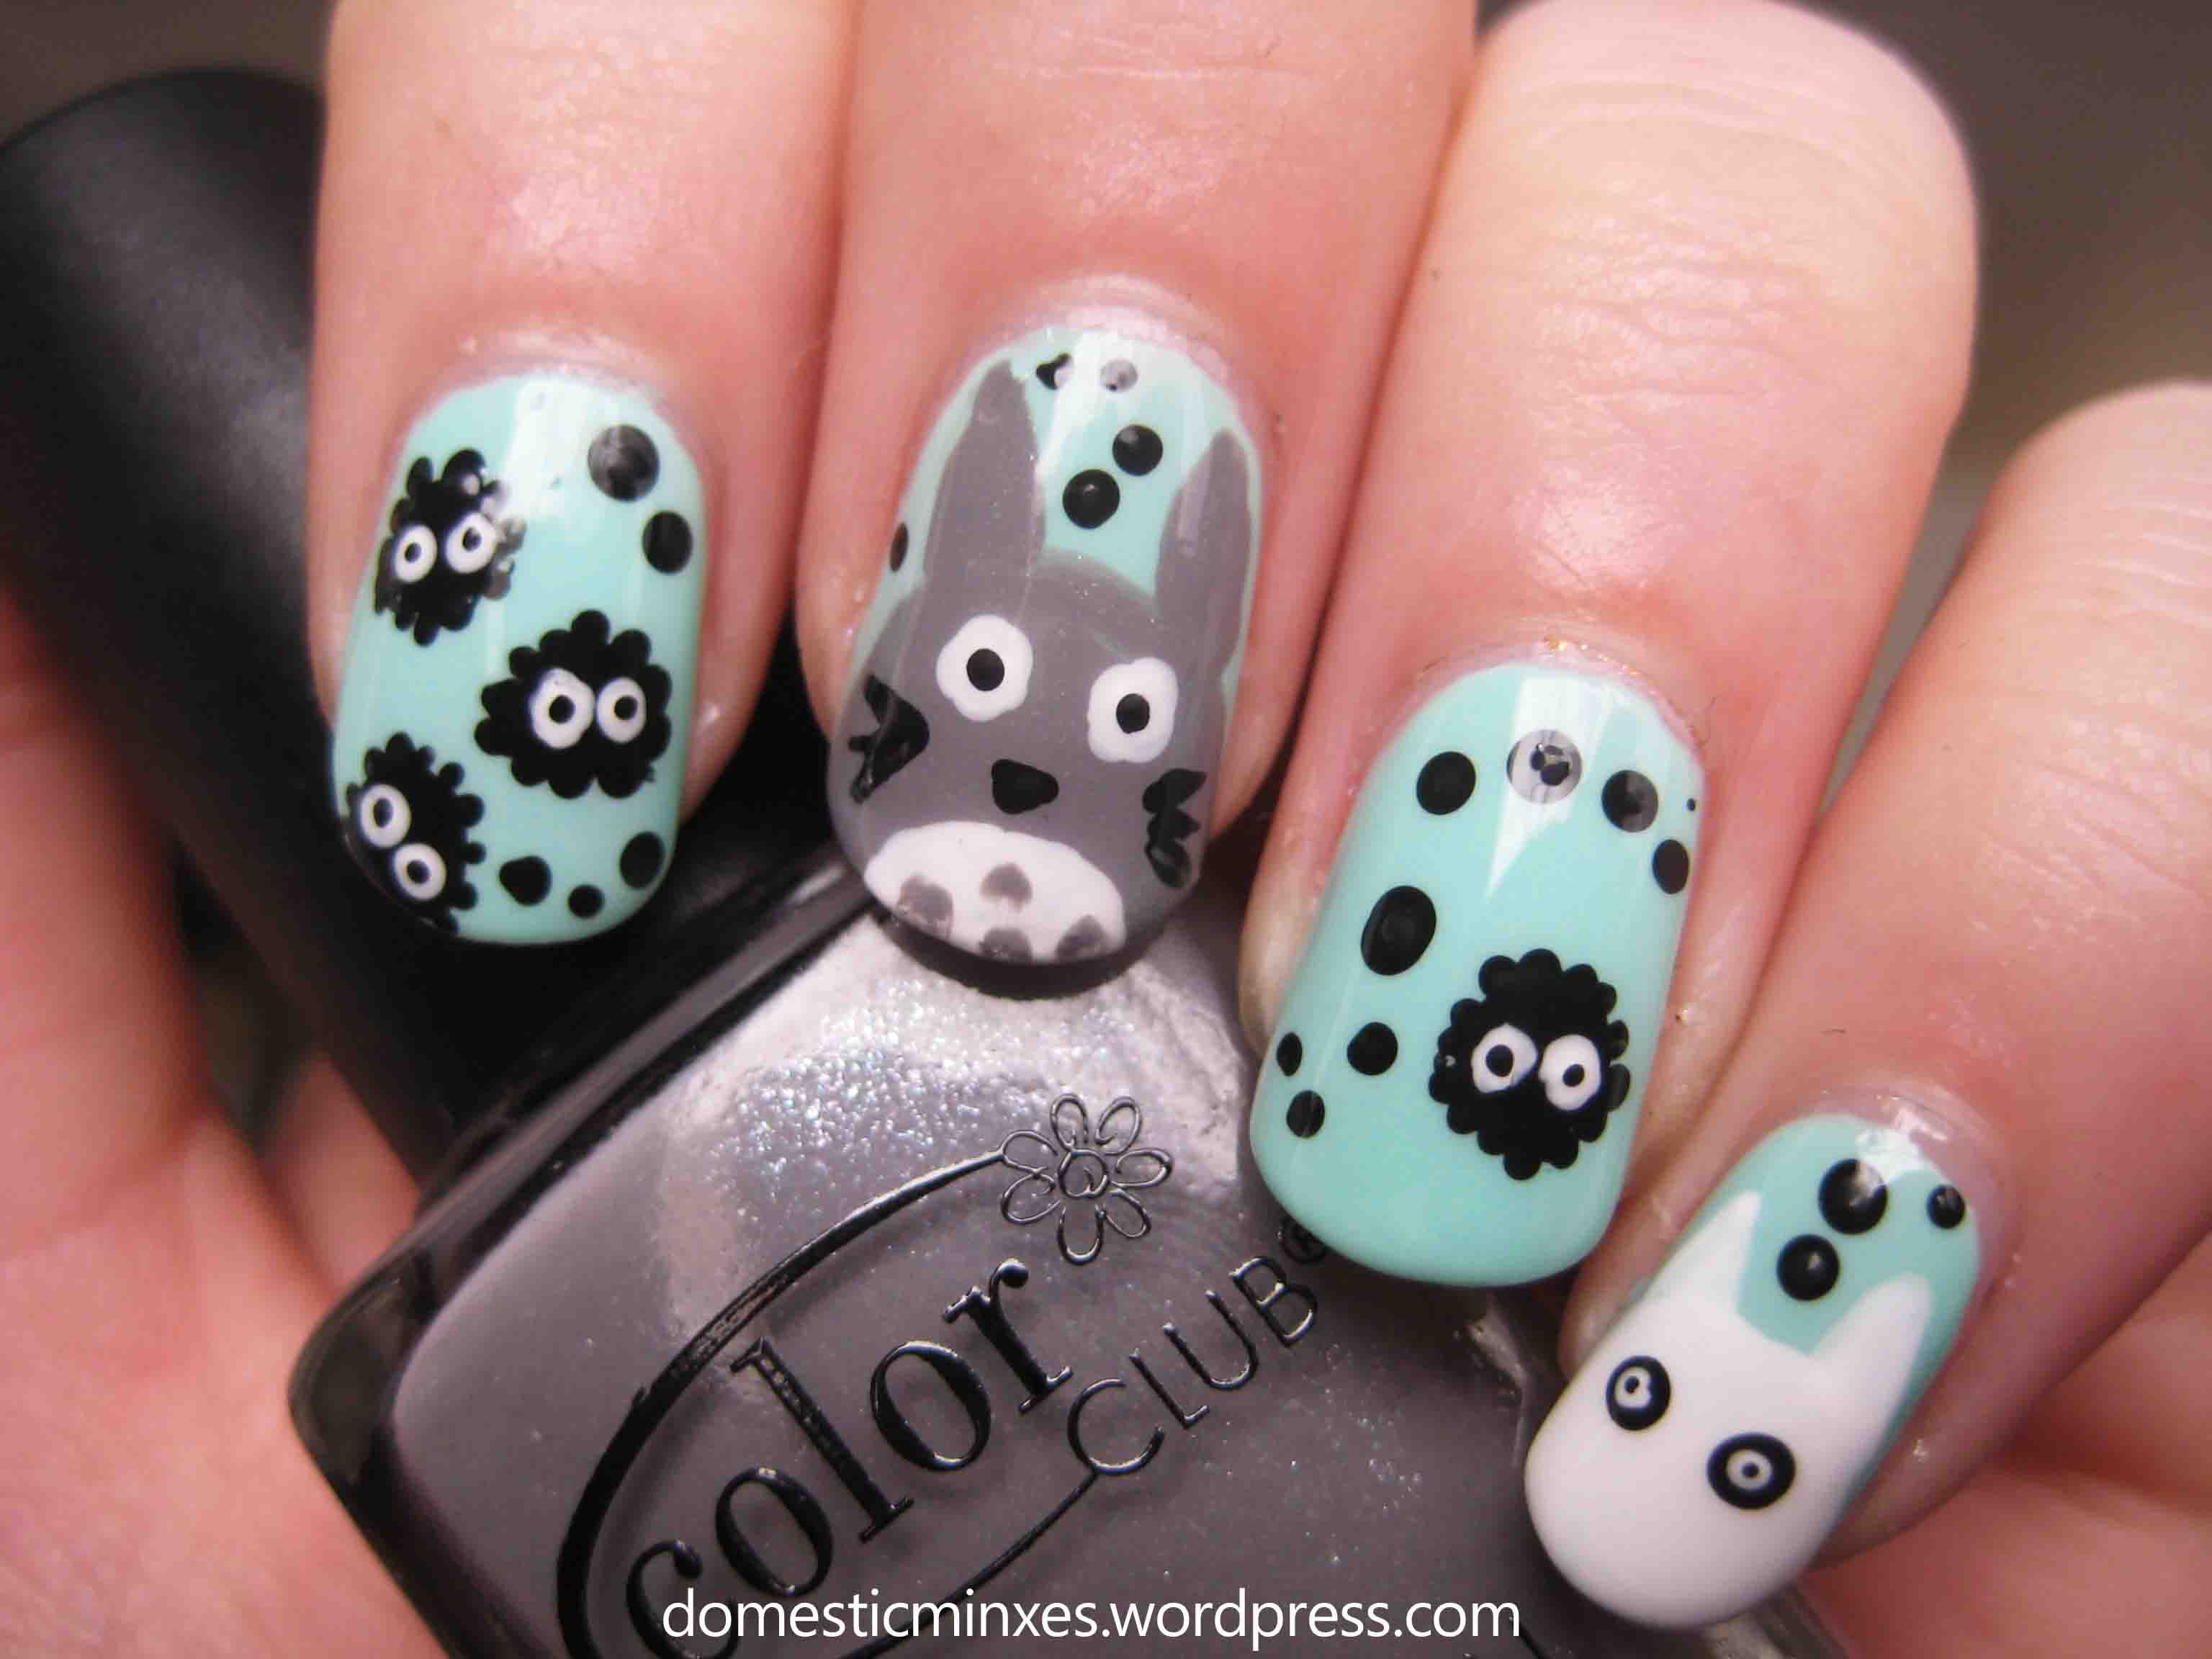 31 day nail challenge day 23 totoro art nails and wide nails 31 day nail challenge day 23 prinsesfo Choice Image